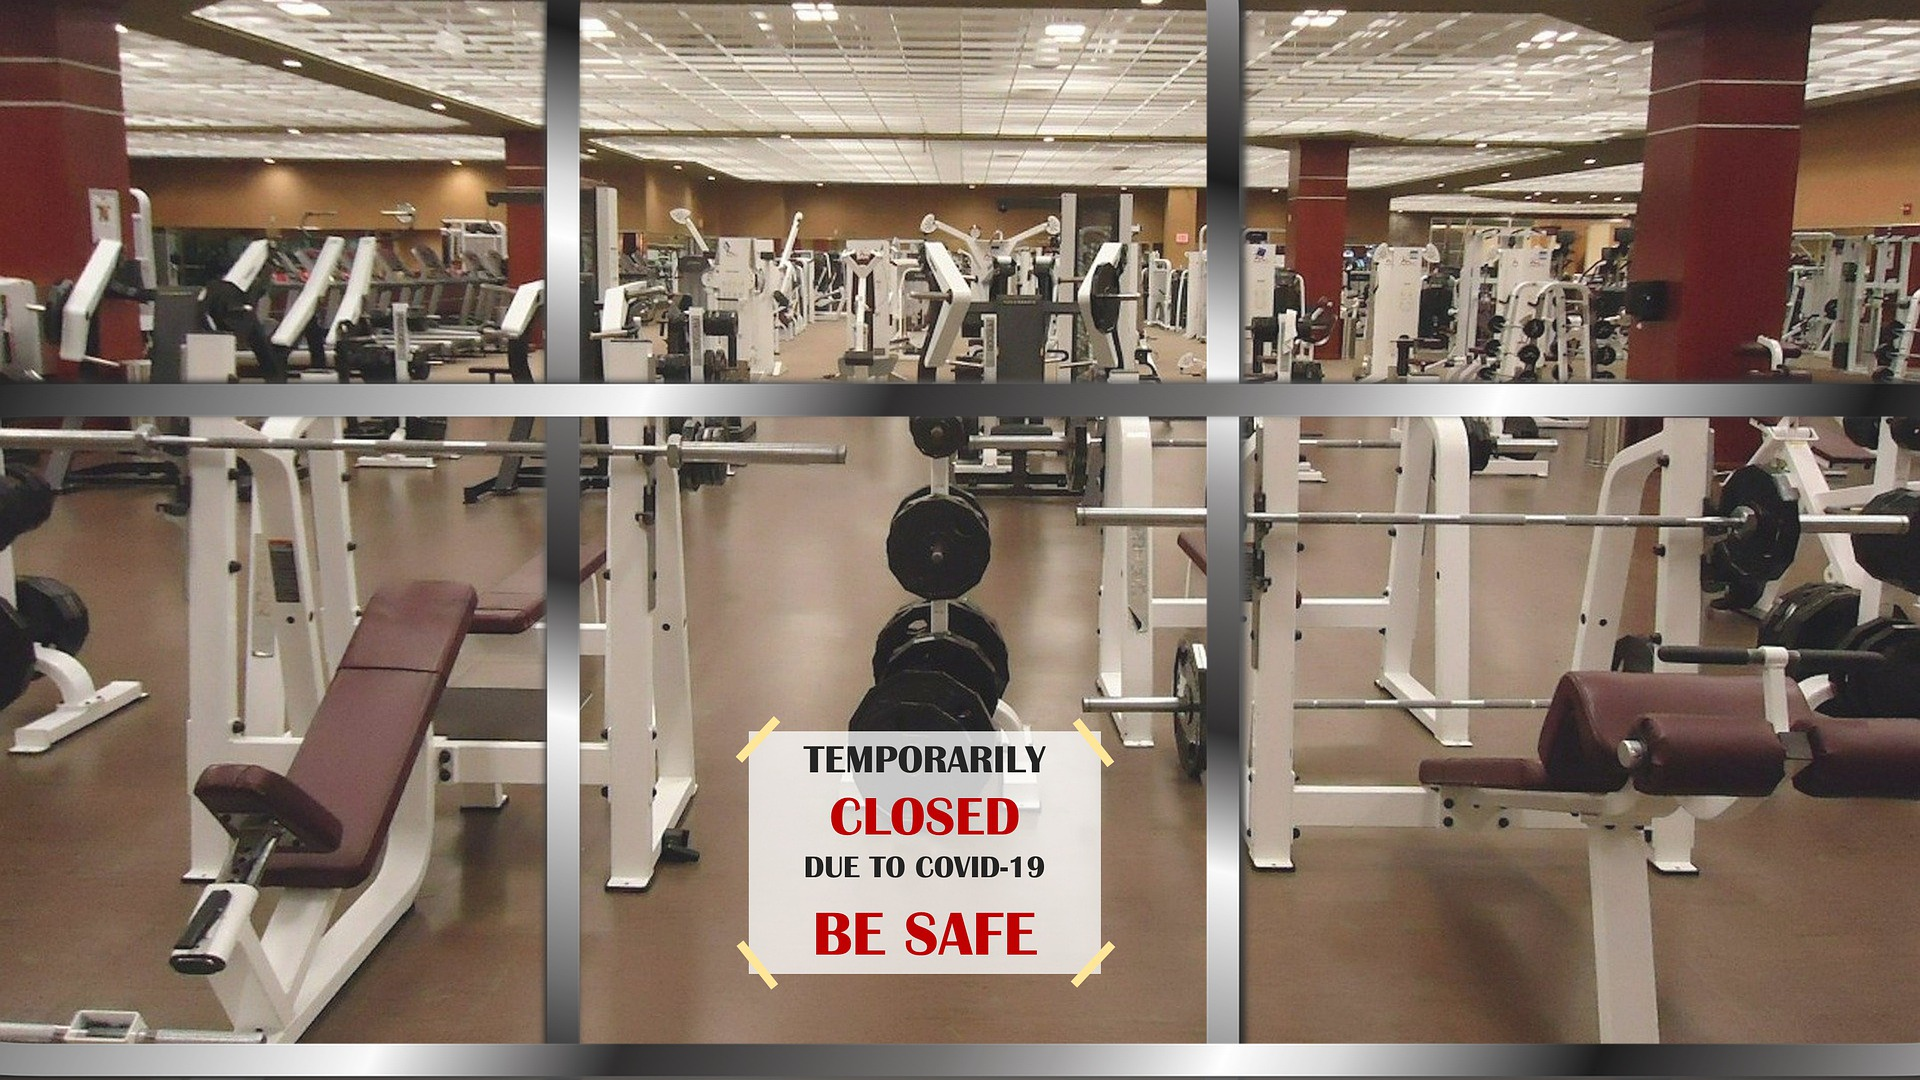 Going to Gym During Coronavirus: Facts to Keep in Mind